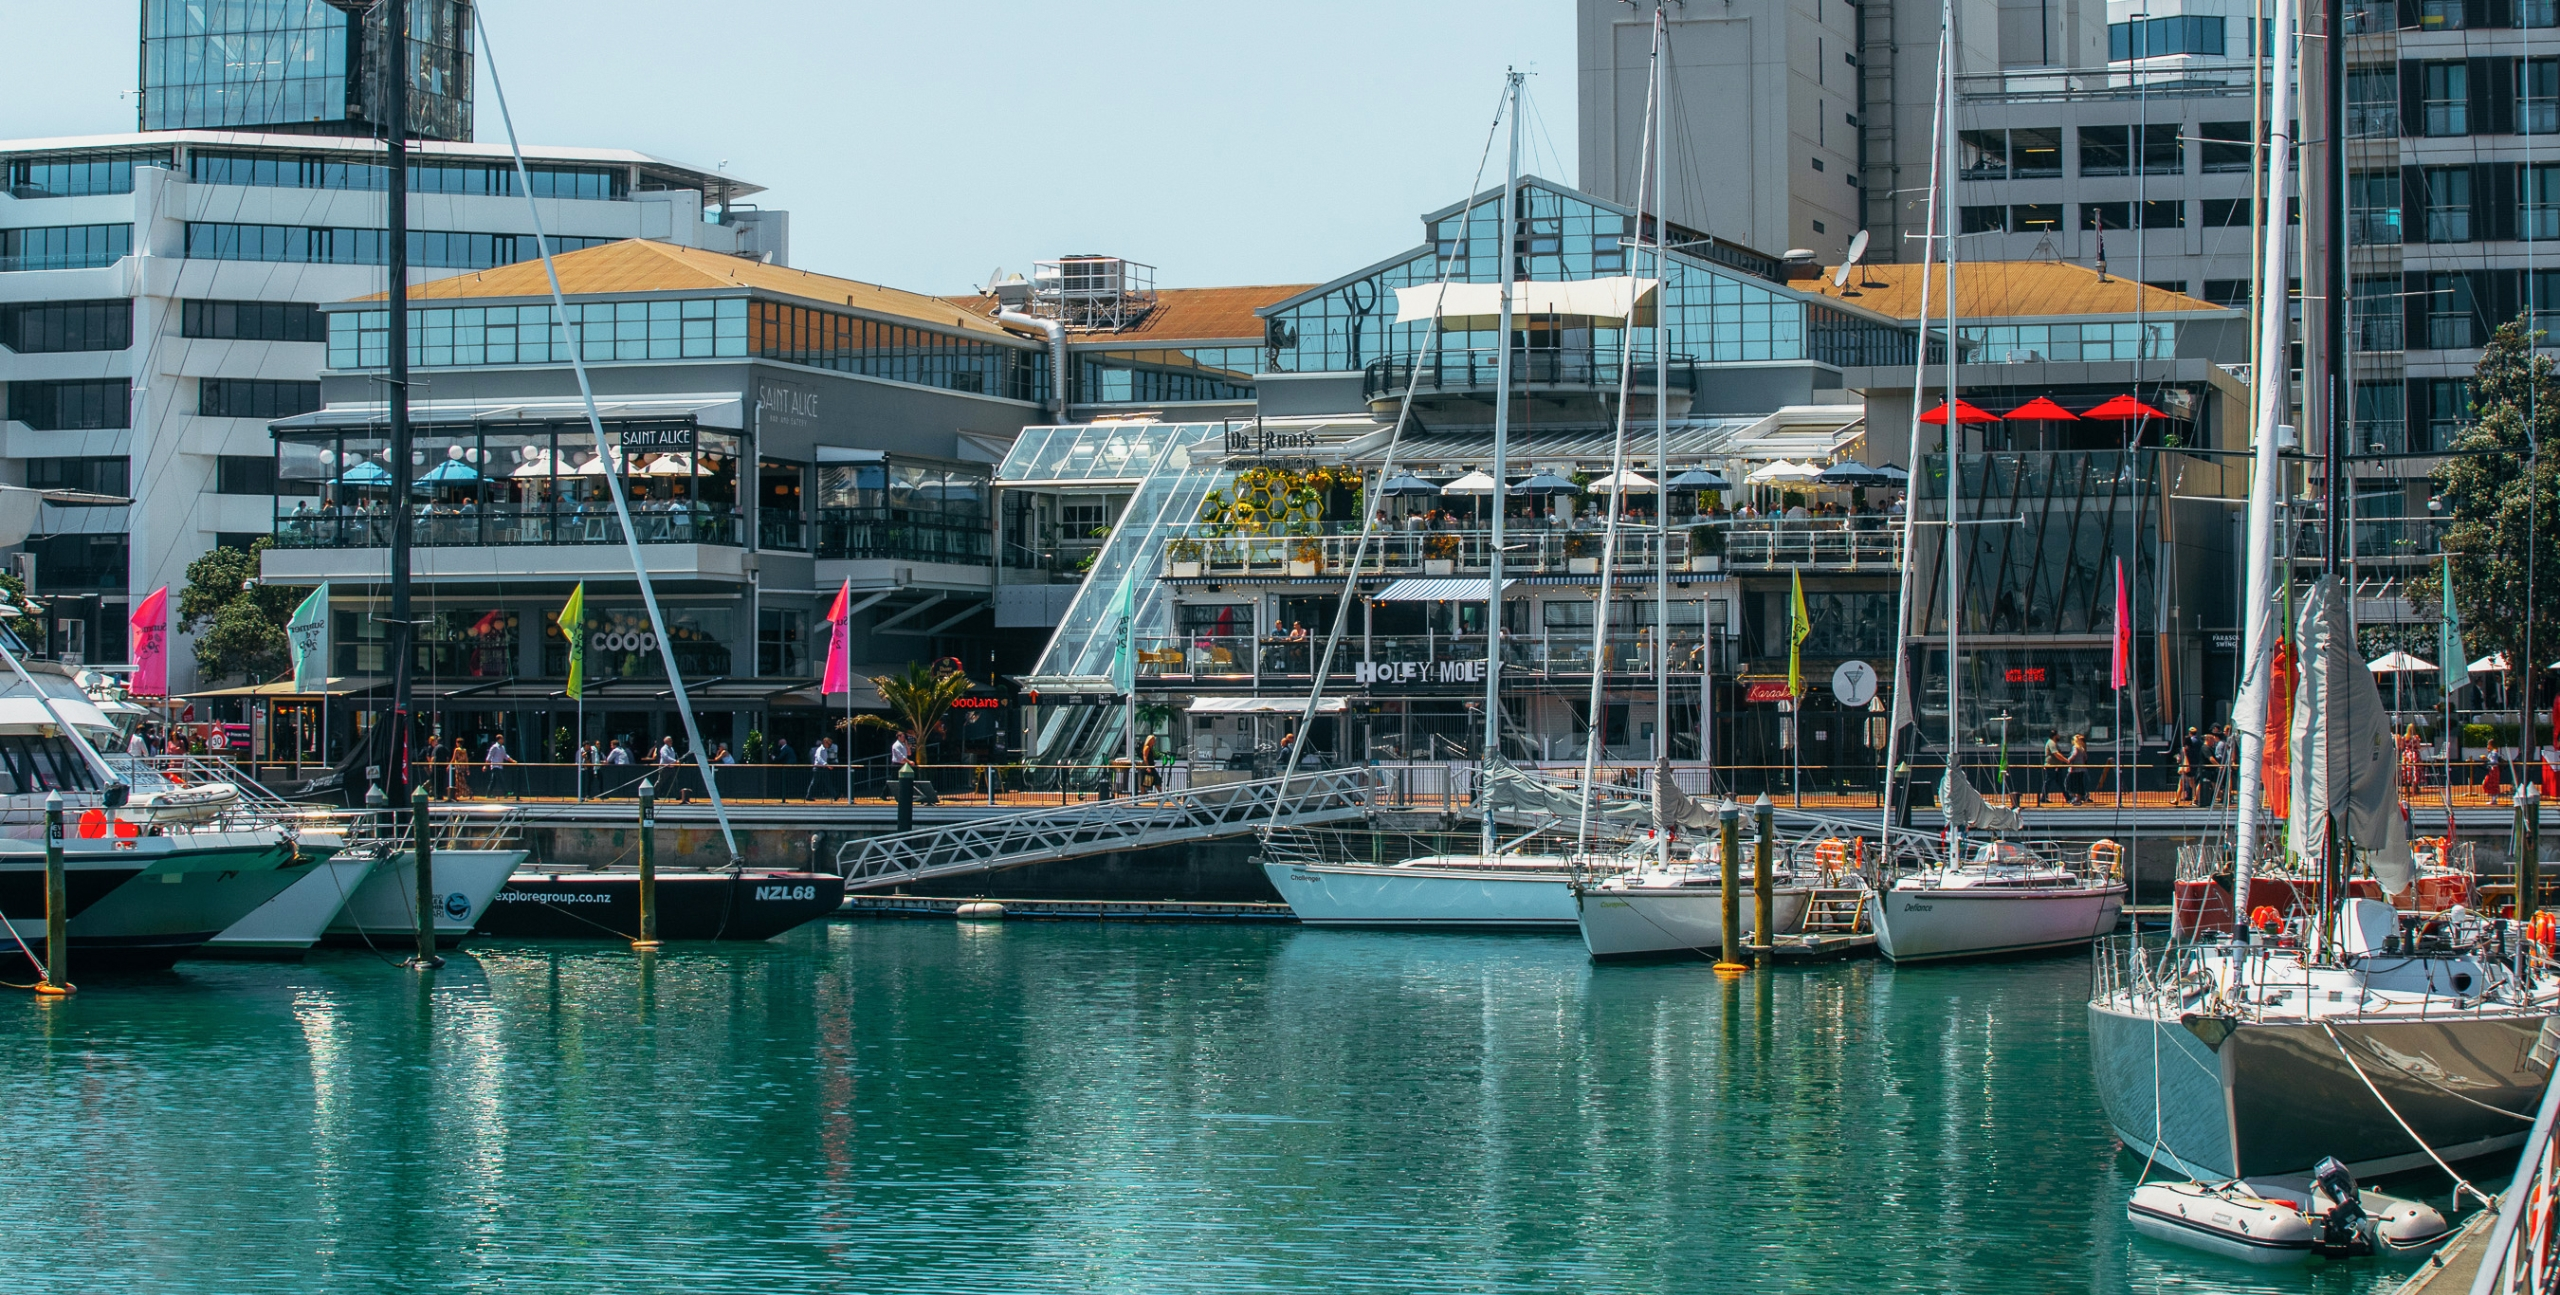 Viaduct Harbour (@viaductharbour) Cover Image